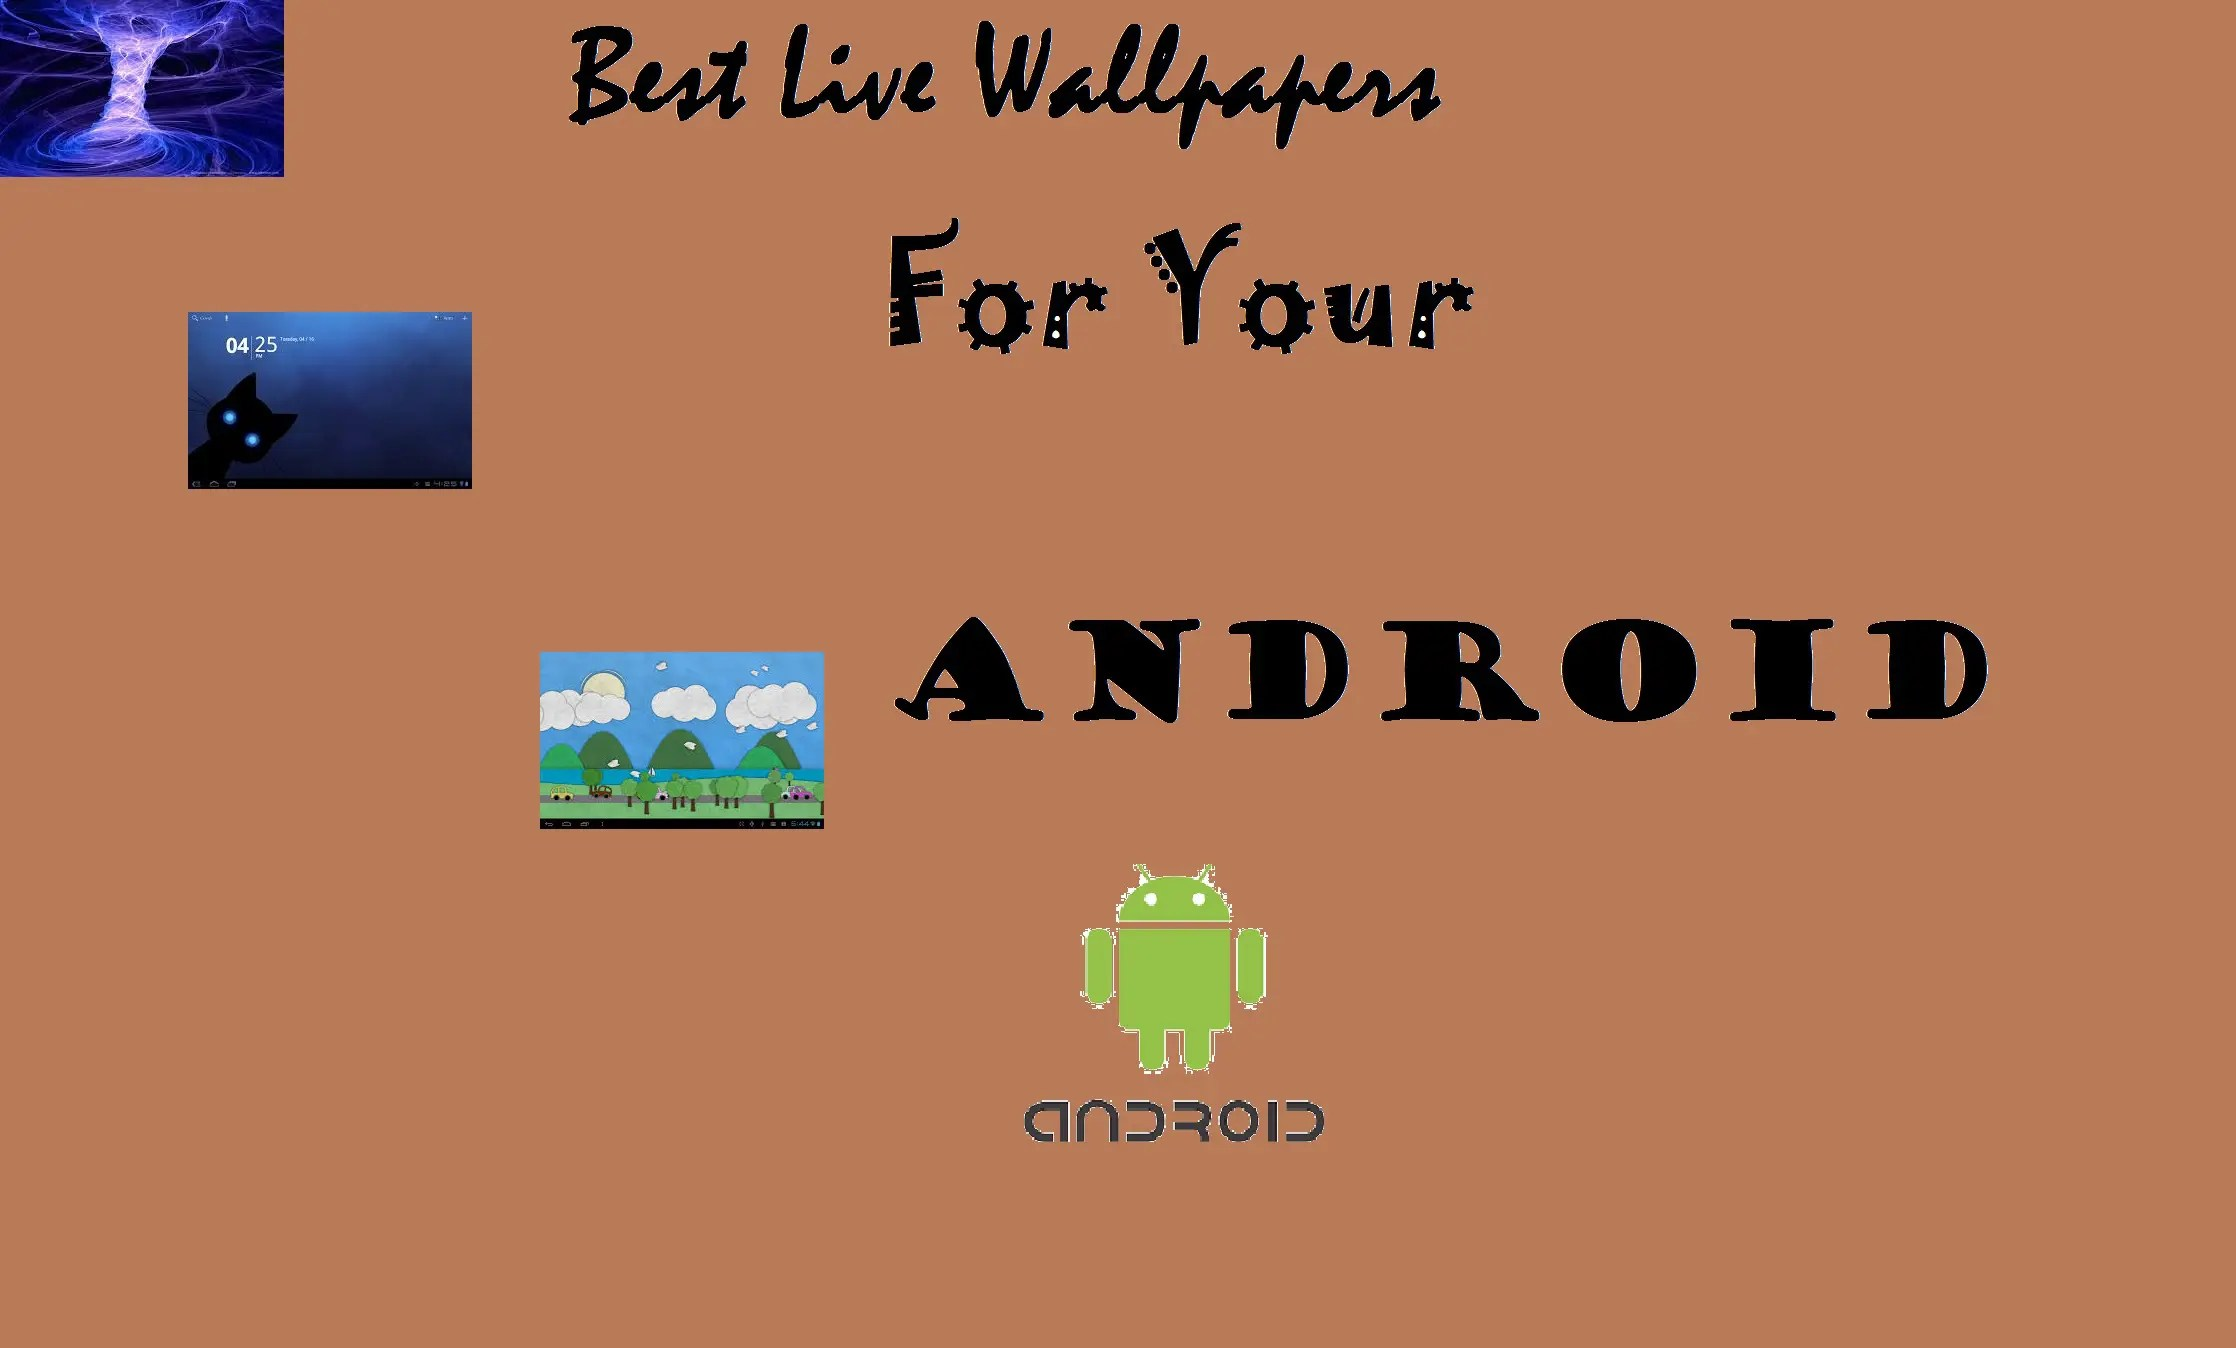 the best live wallpapers for your android